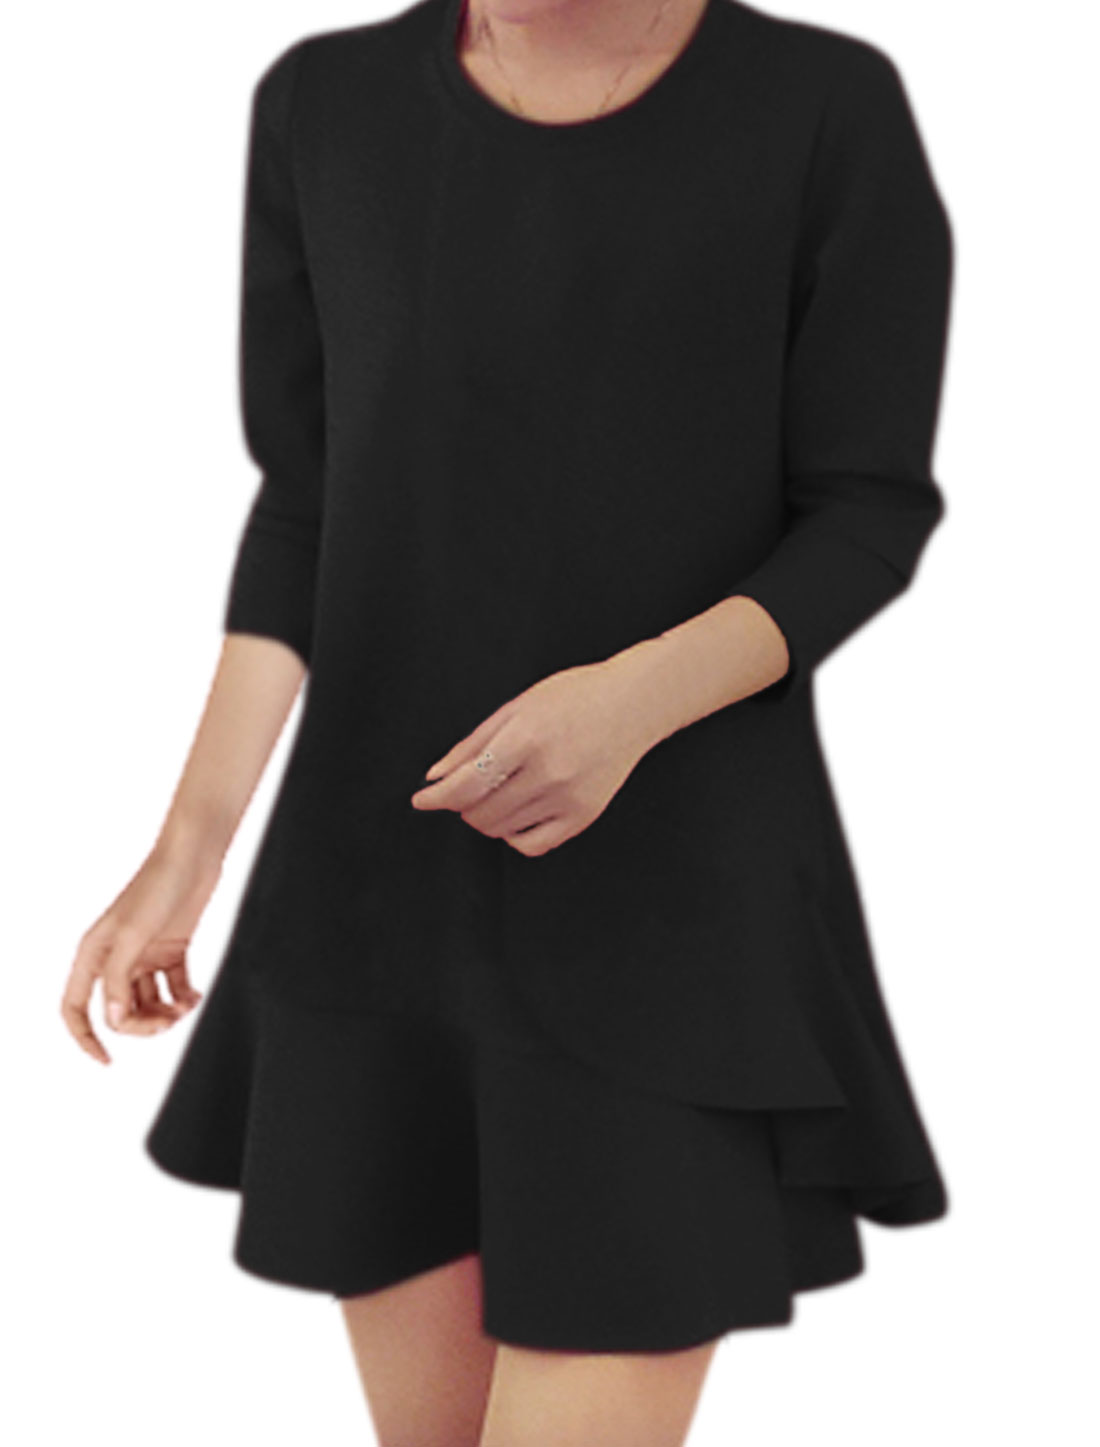 Women Round Neck Flouncing Hem Layered Tunic Dress Black M